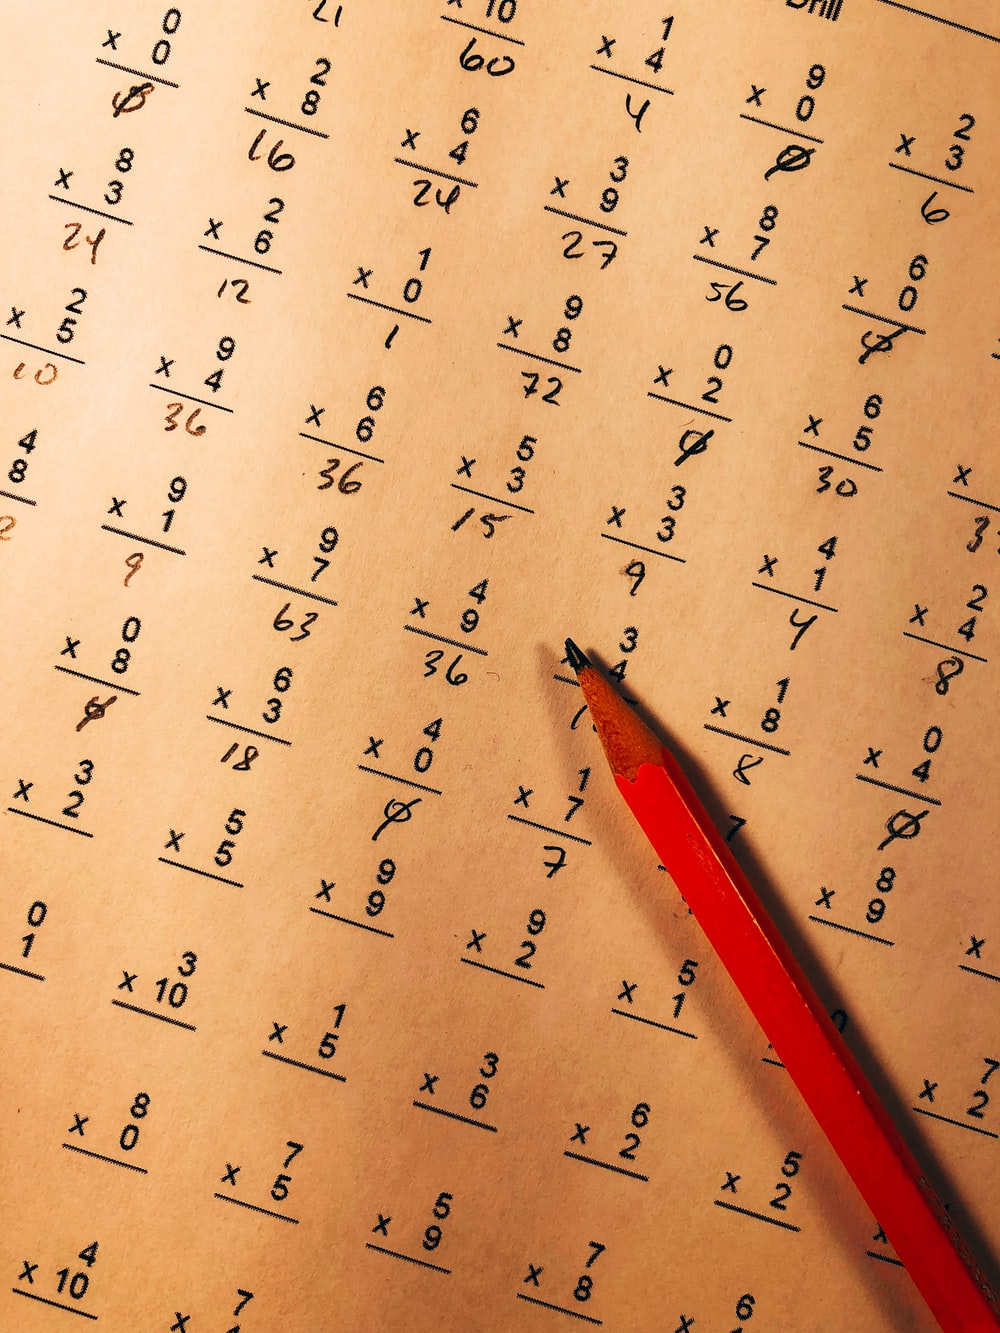 red pencil on top of mathematical quiz paper